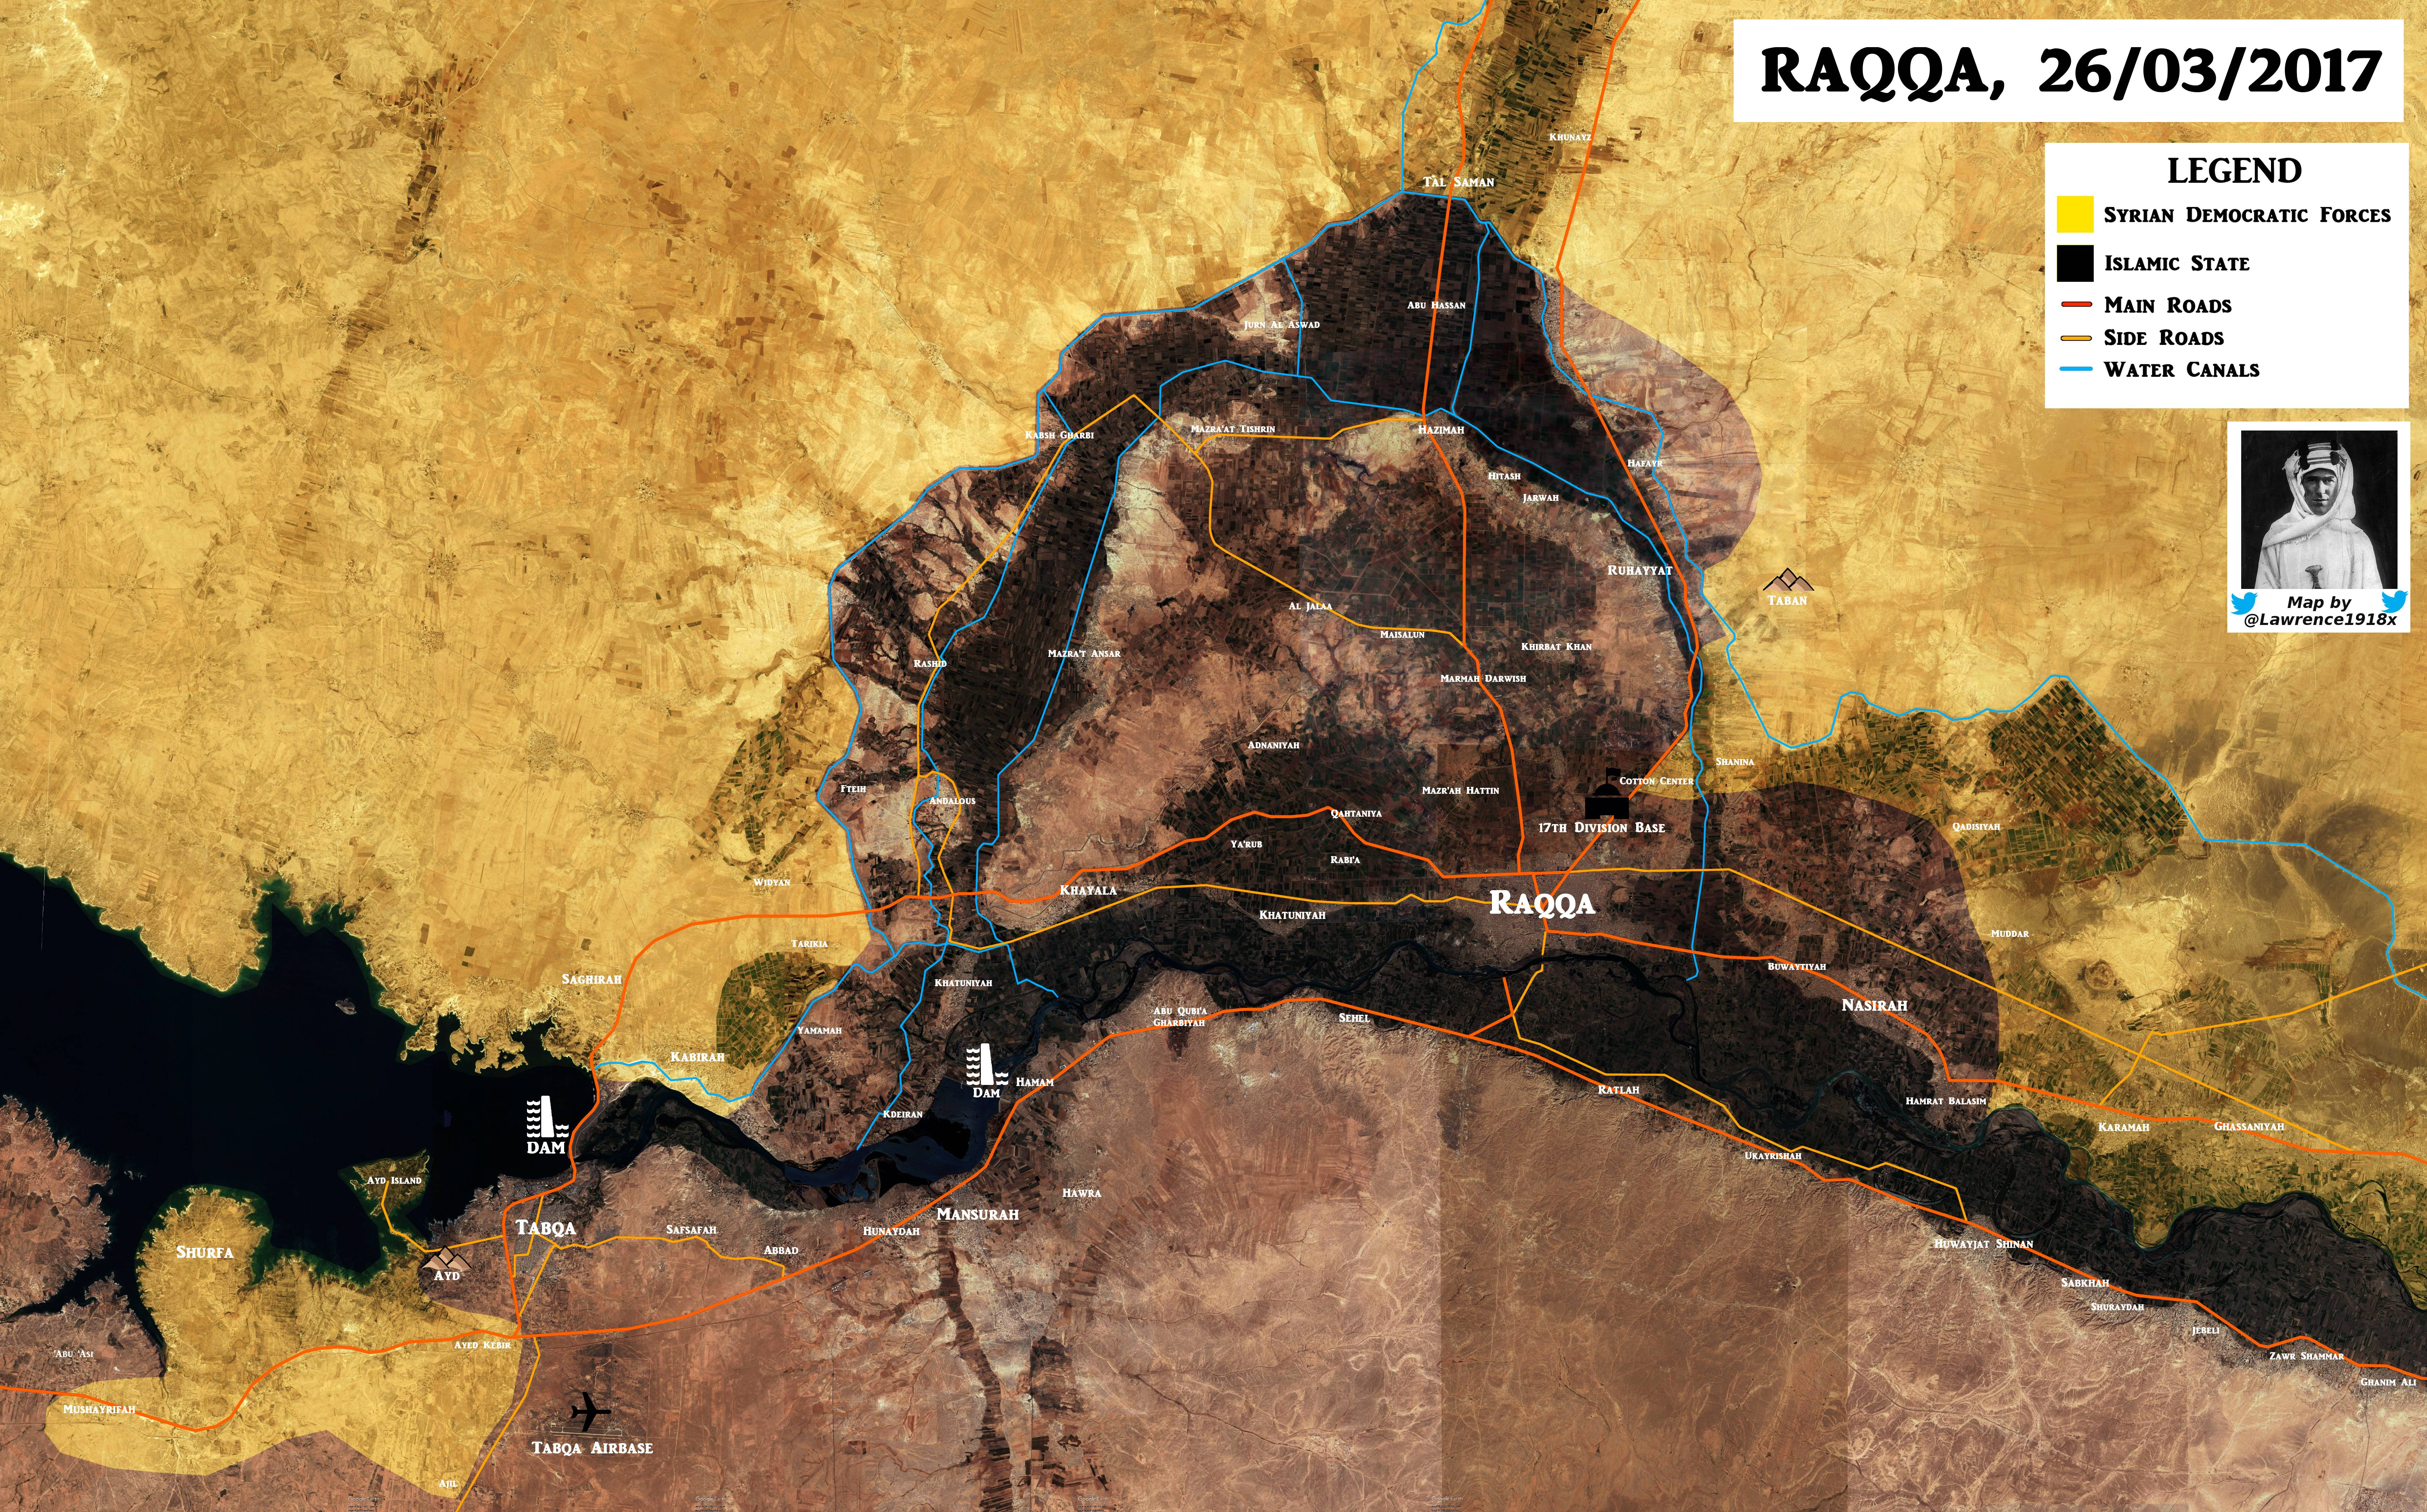 Which Part Of Tabqa Dam Do US-backed Forces Really Control?